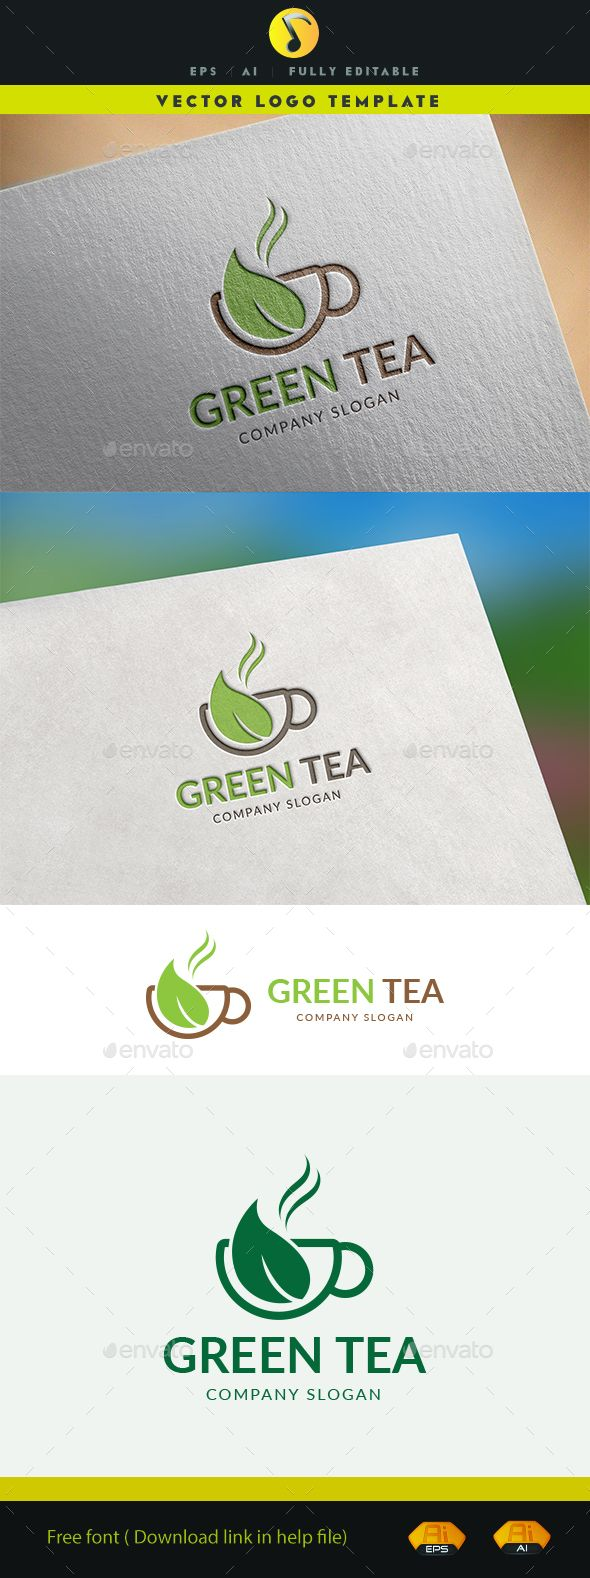 Green Tea Logo — Vector EPS #object #tea leaves • Available here → https://graphicriver.net/item/green-tea-logo/15874033?ref=pxcr